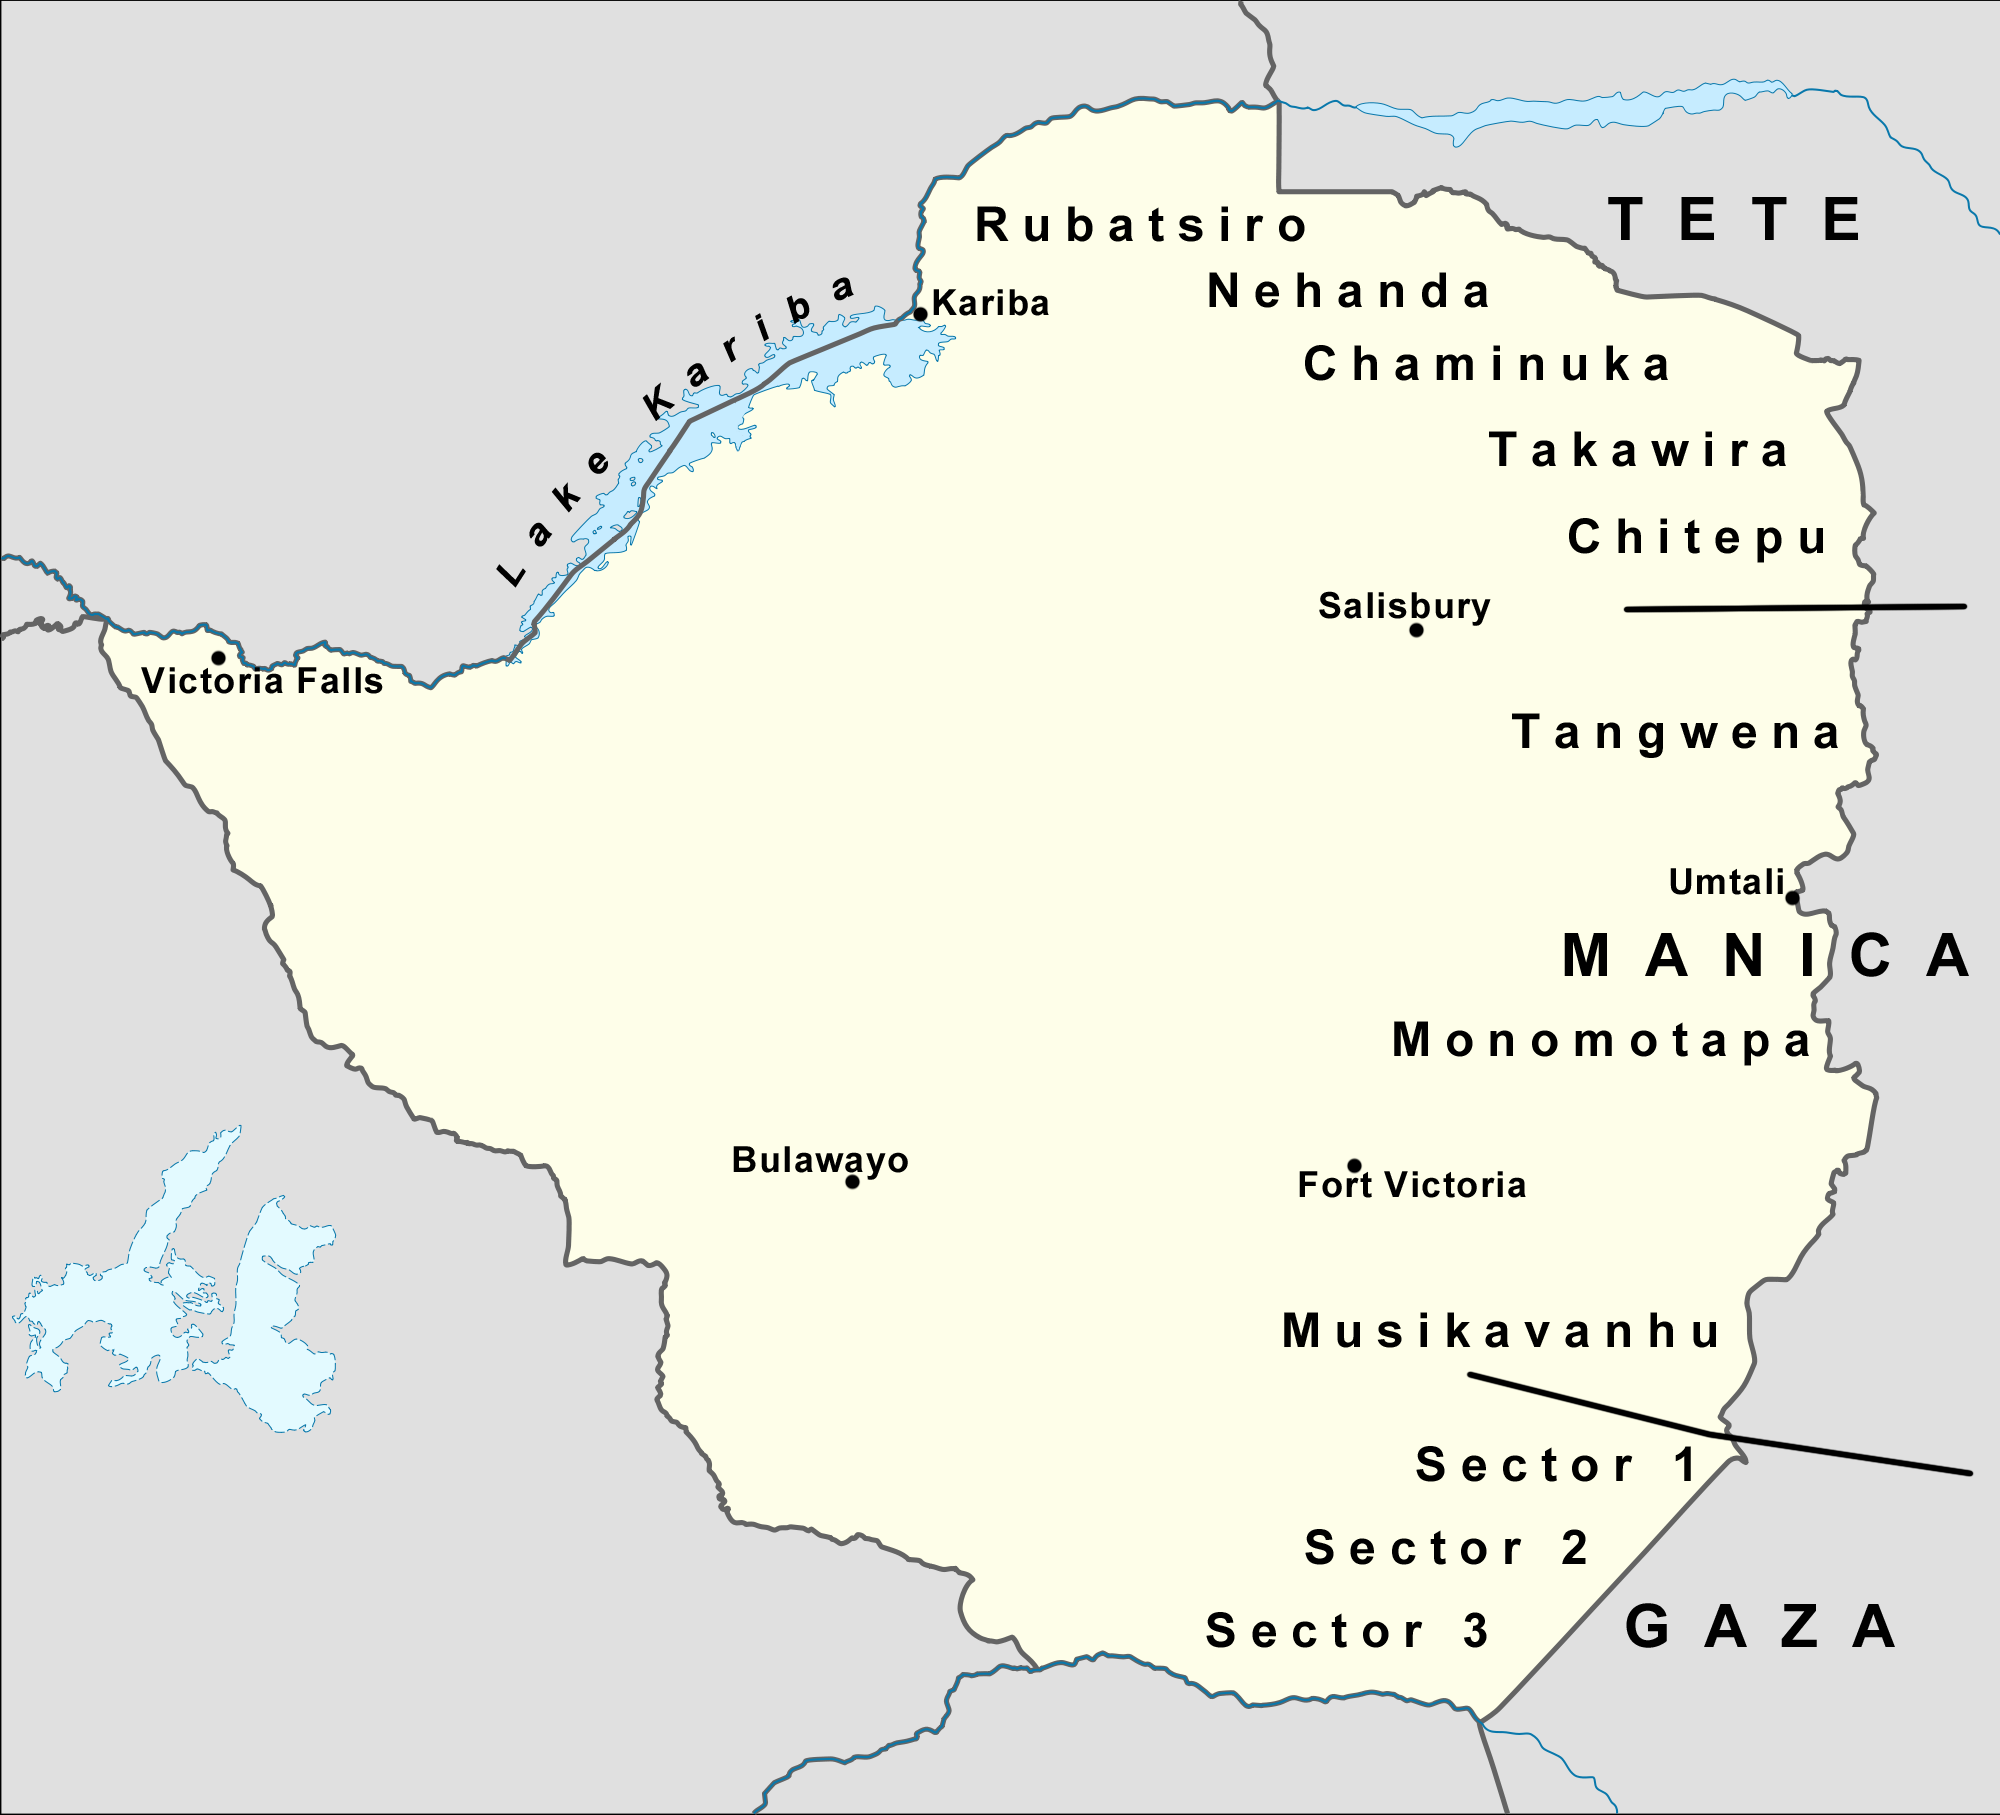 FileZANLA provinces and sectorspng Wikimedia Commons